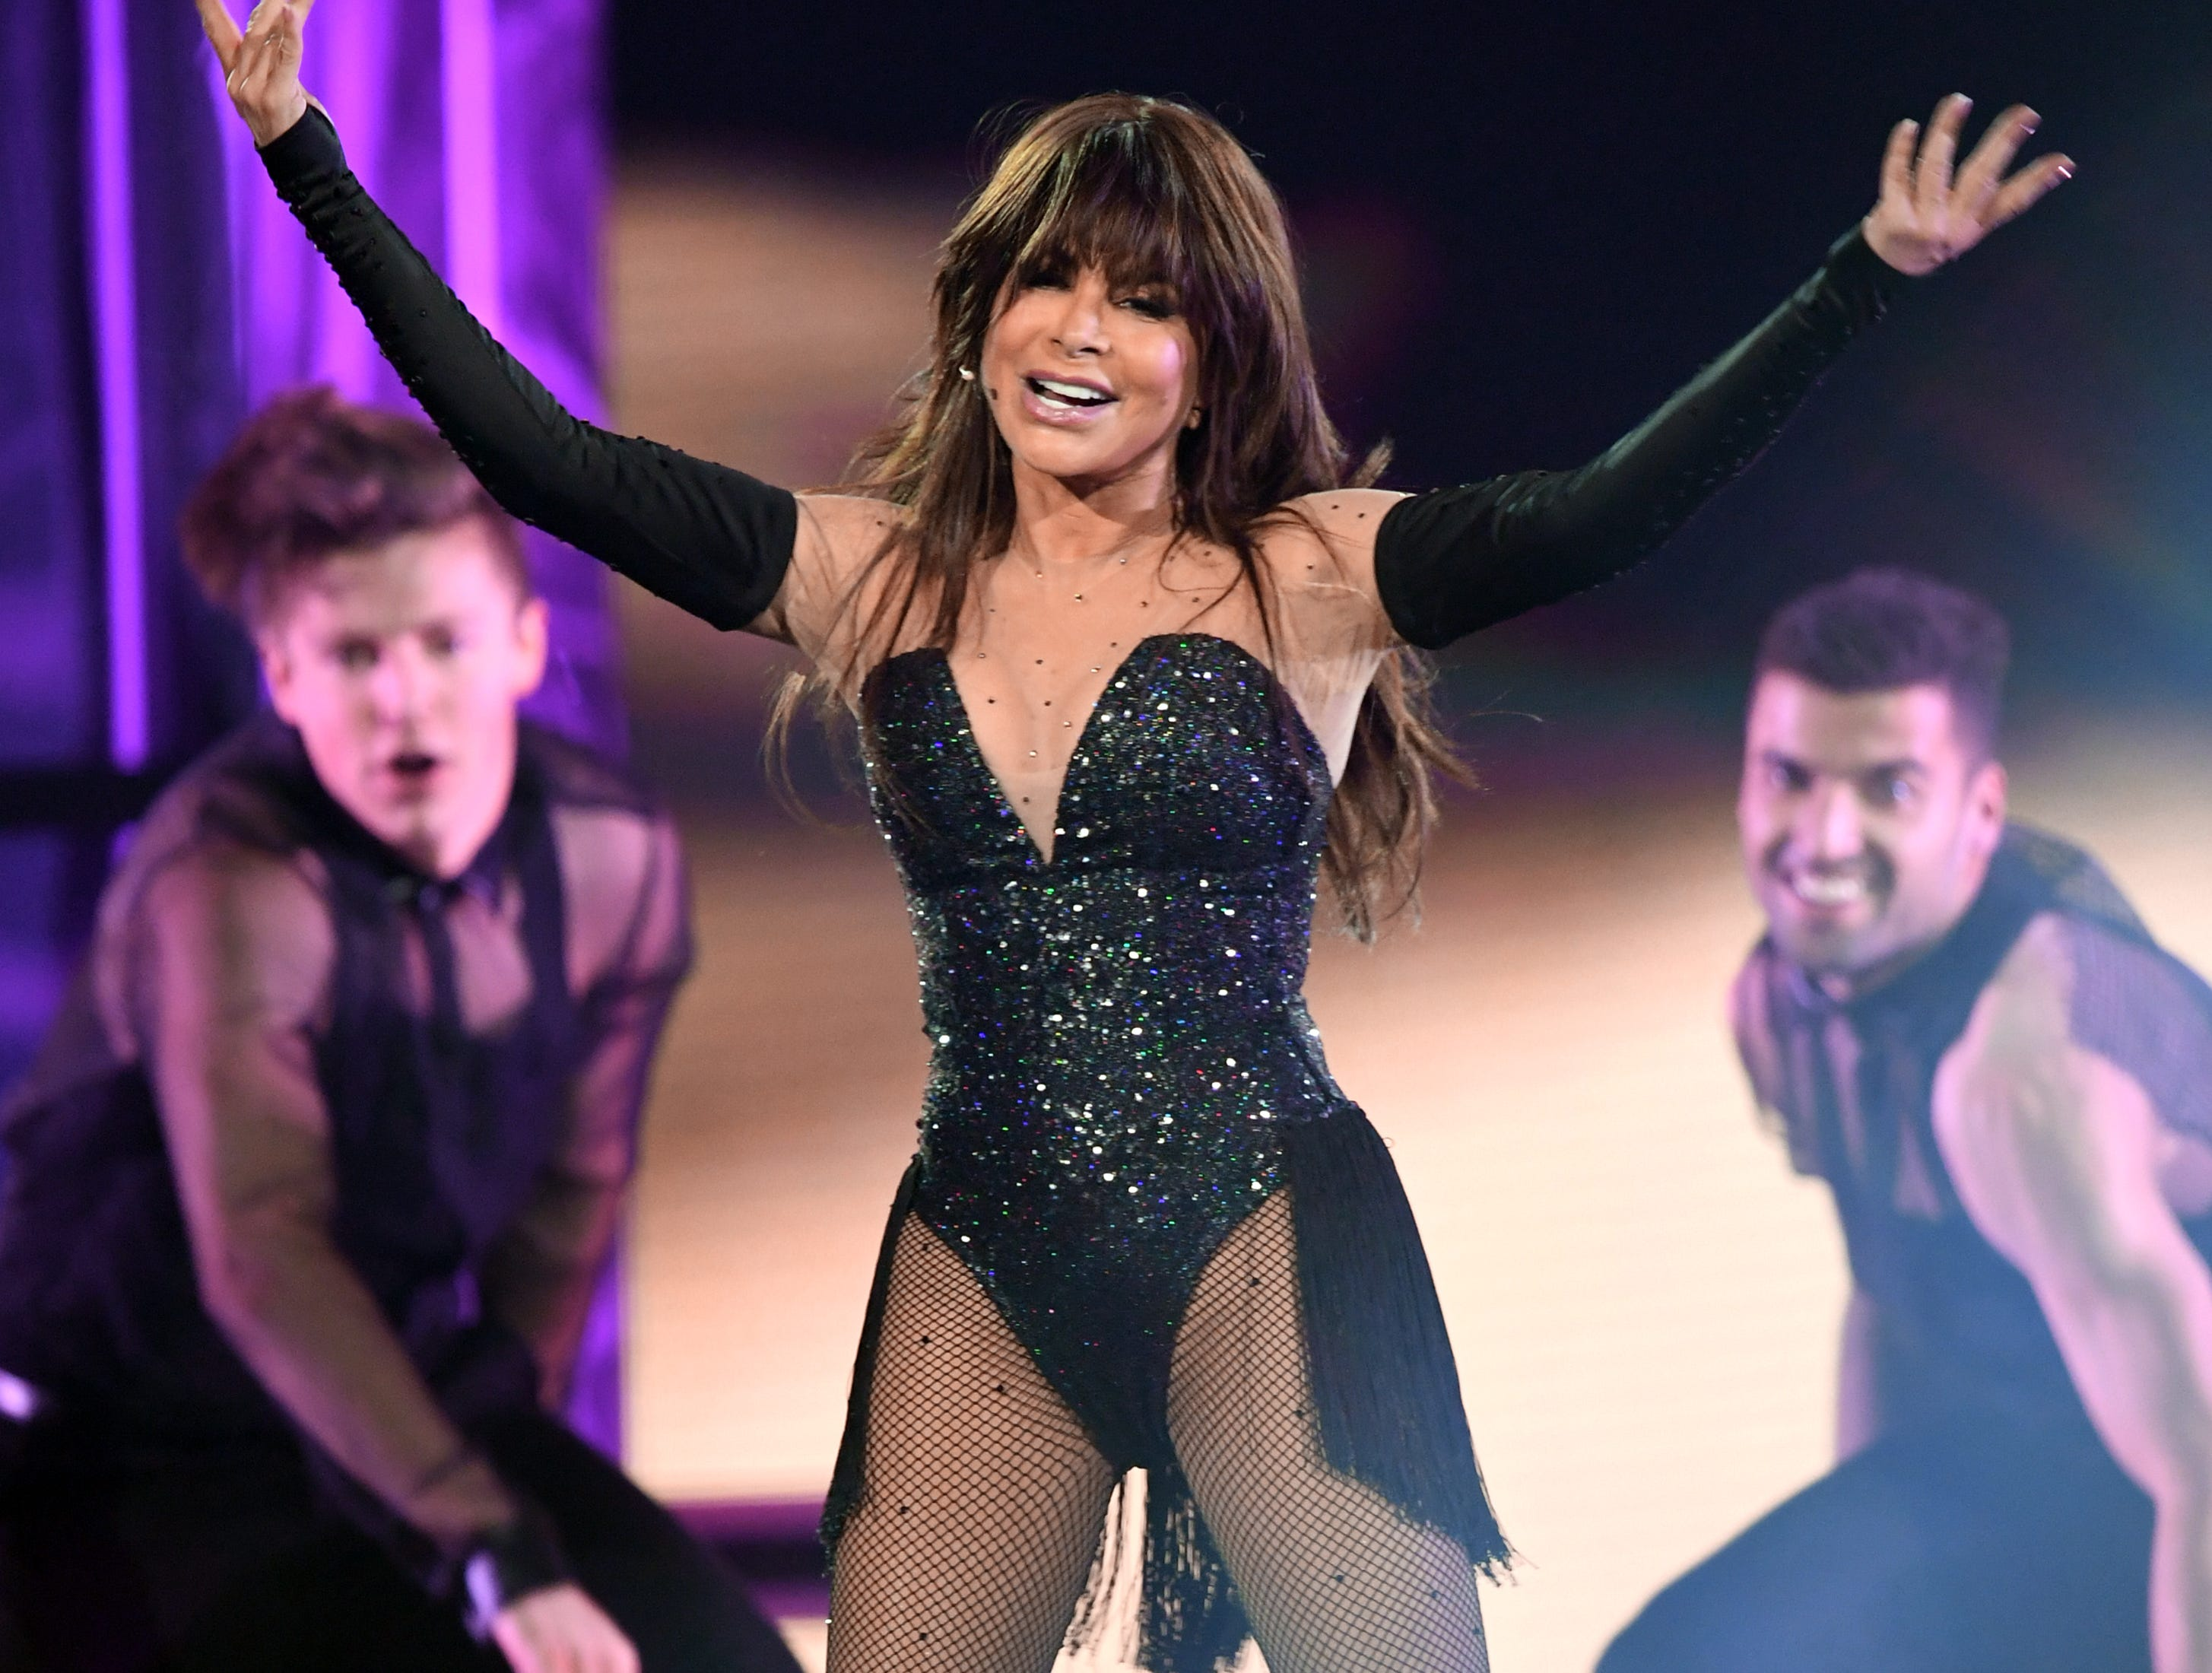 Paula Abdul performs onstage during the 2019 Billboard Music Awards at MGM Grand Garden Arena on May 01, 2019 in Las Vegas, Nevada.